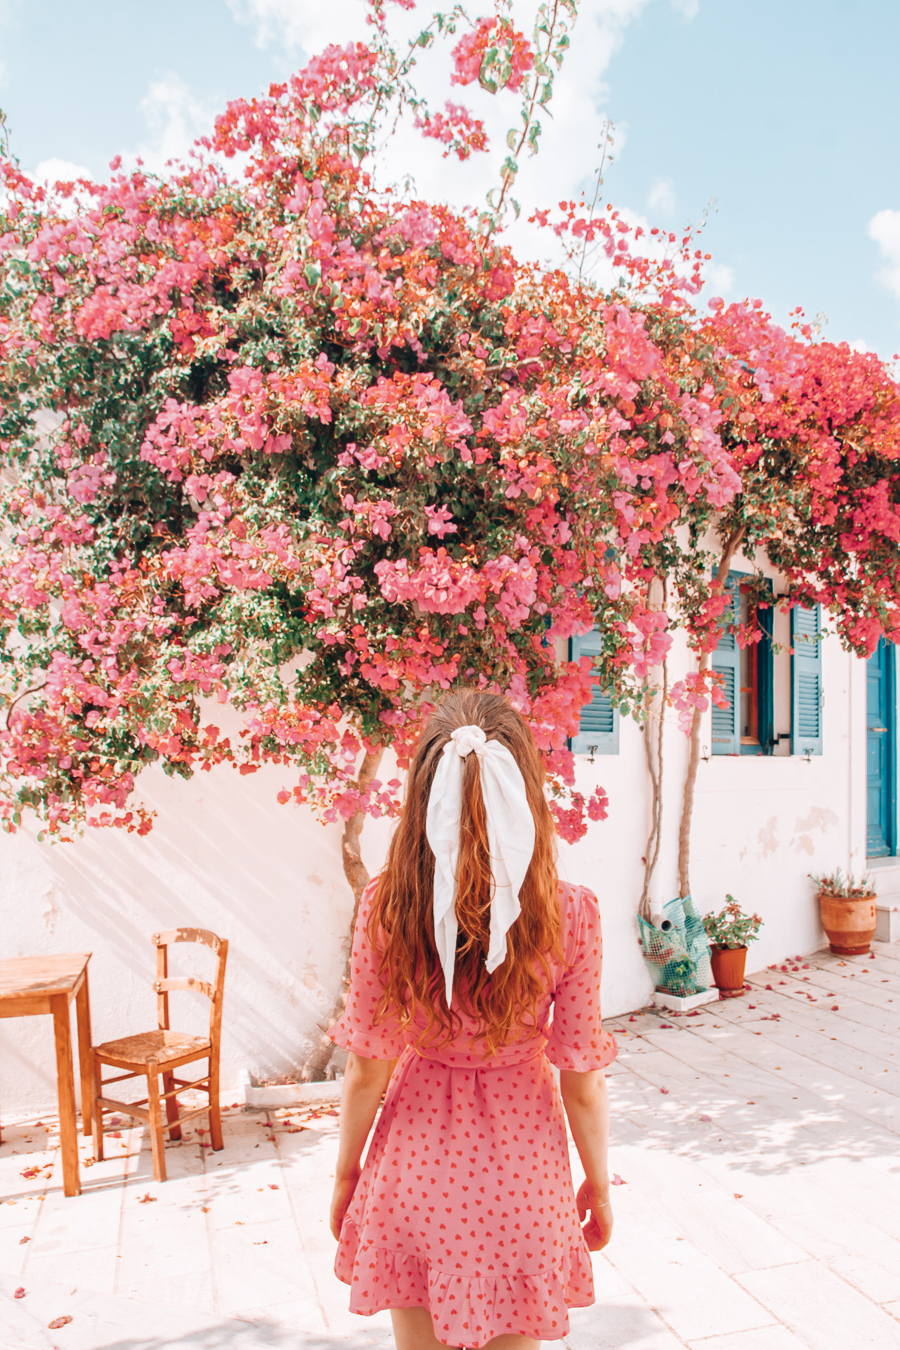 Girl in front of a building with flowers in Lefkes